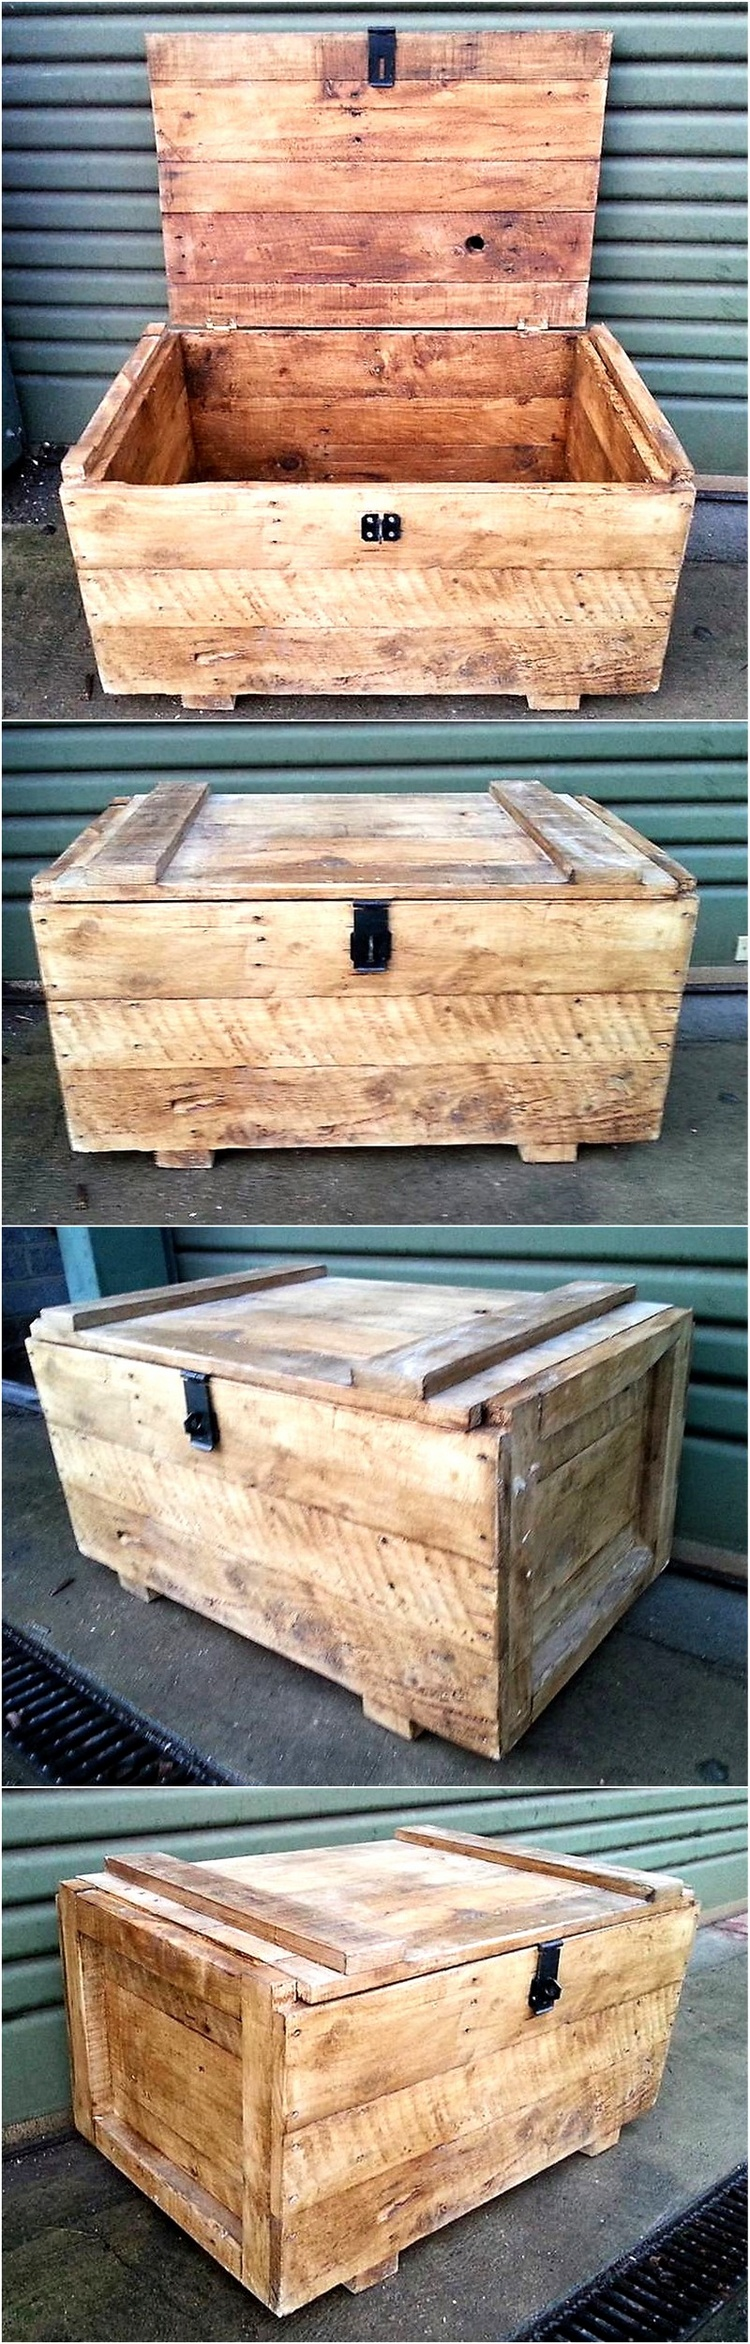 wood pallet craft ideas rustic look pallet creations by p b woodcraft wood 5762